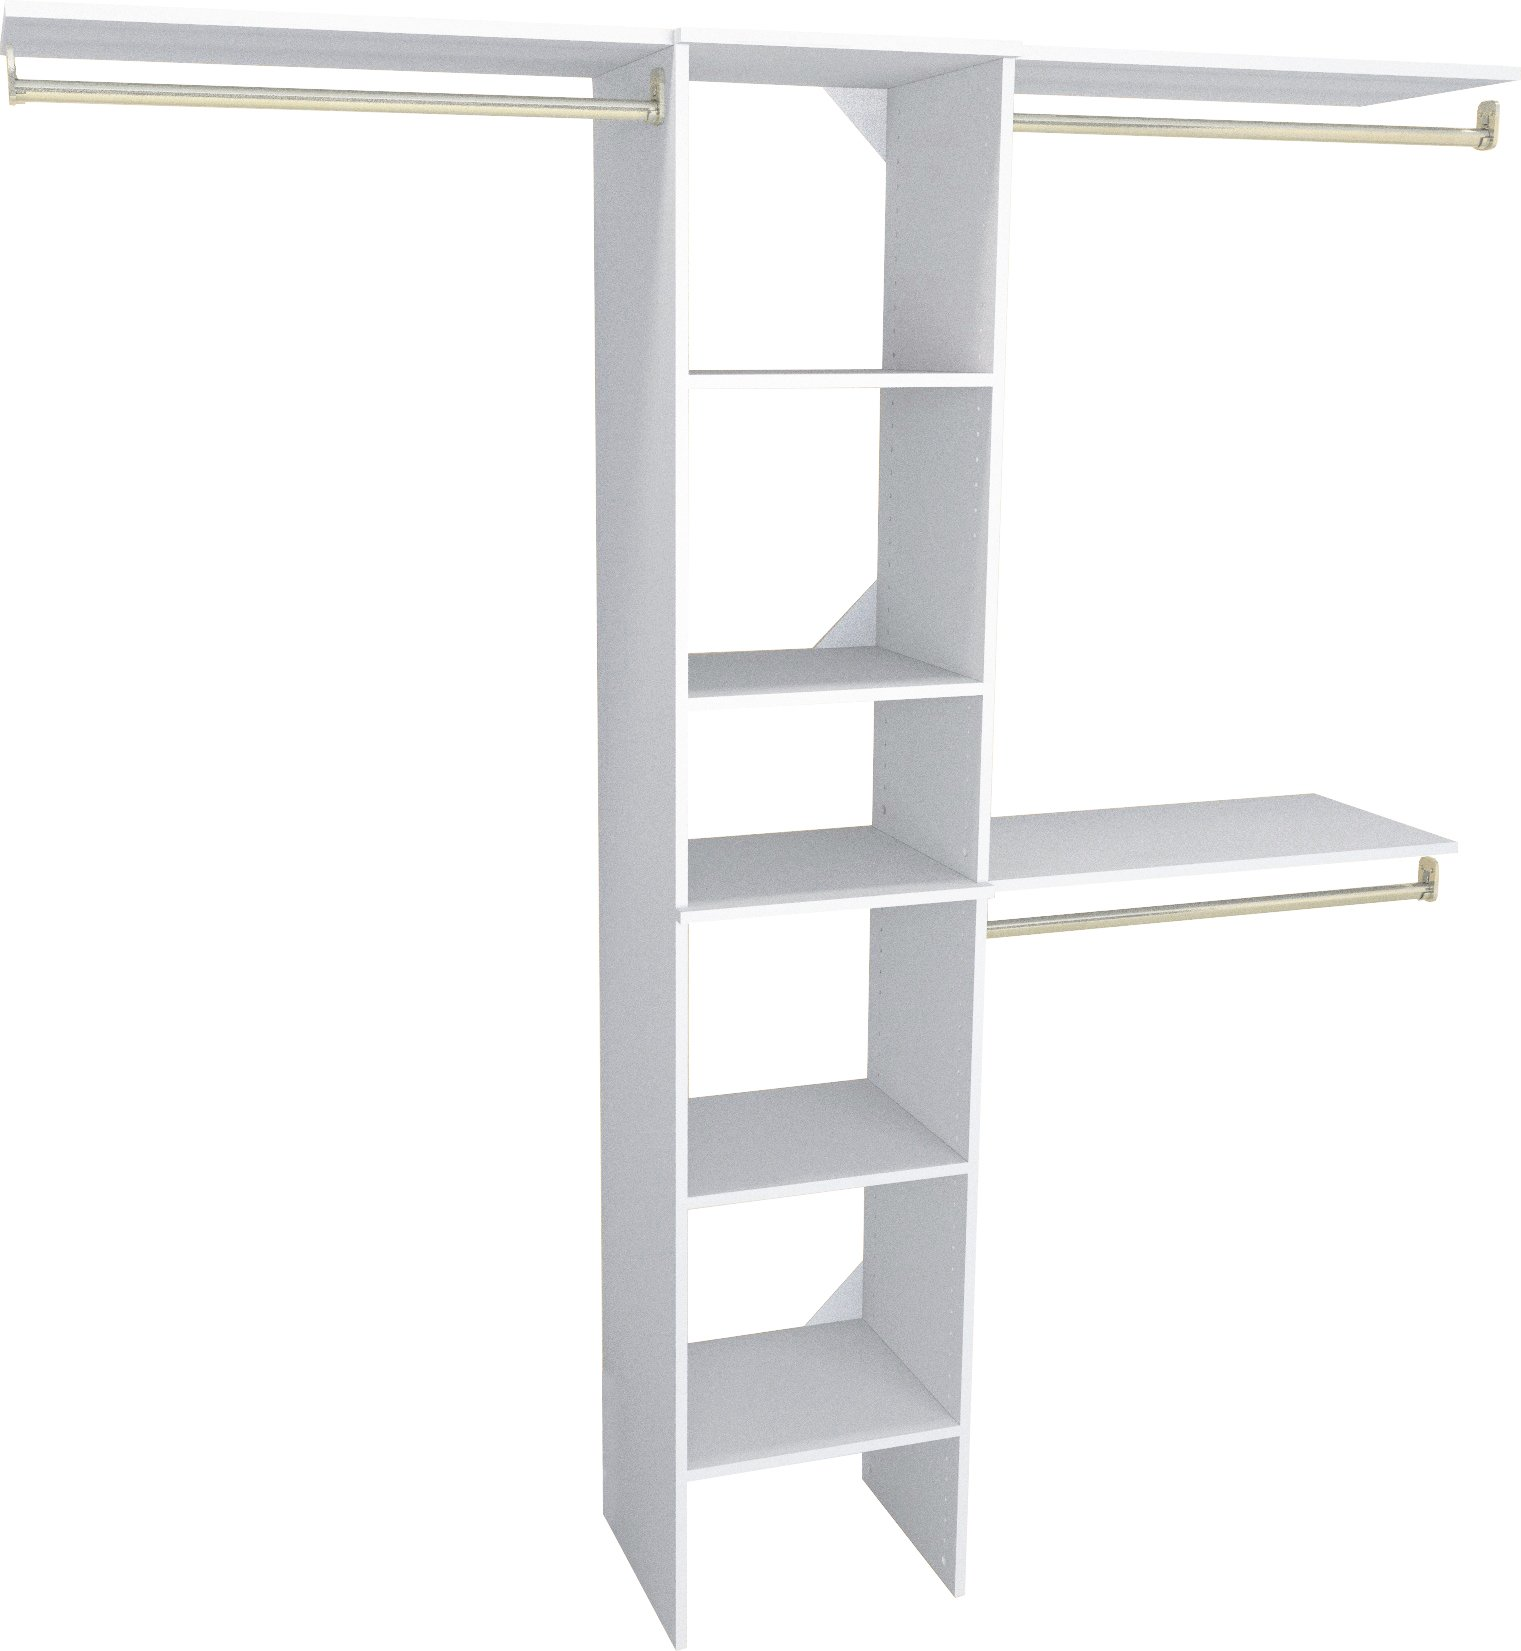 ClosetMaid 1951040 SuiteSymphony 16-Inch Closet Organizer with Shelves, Pure White